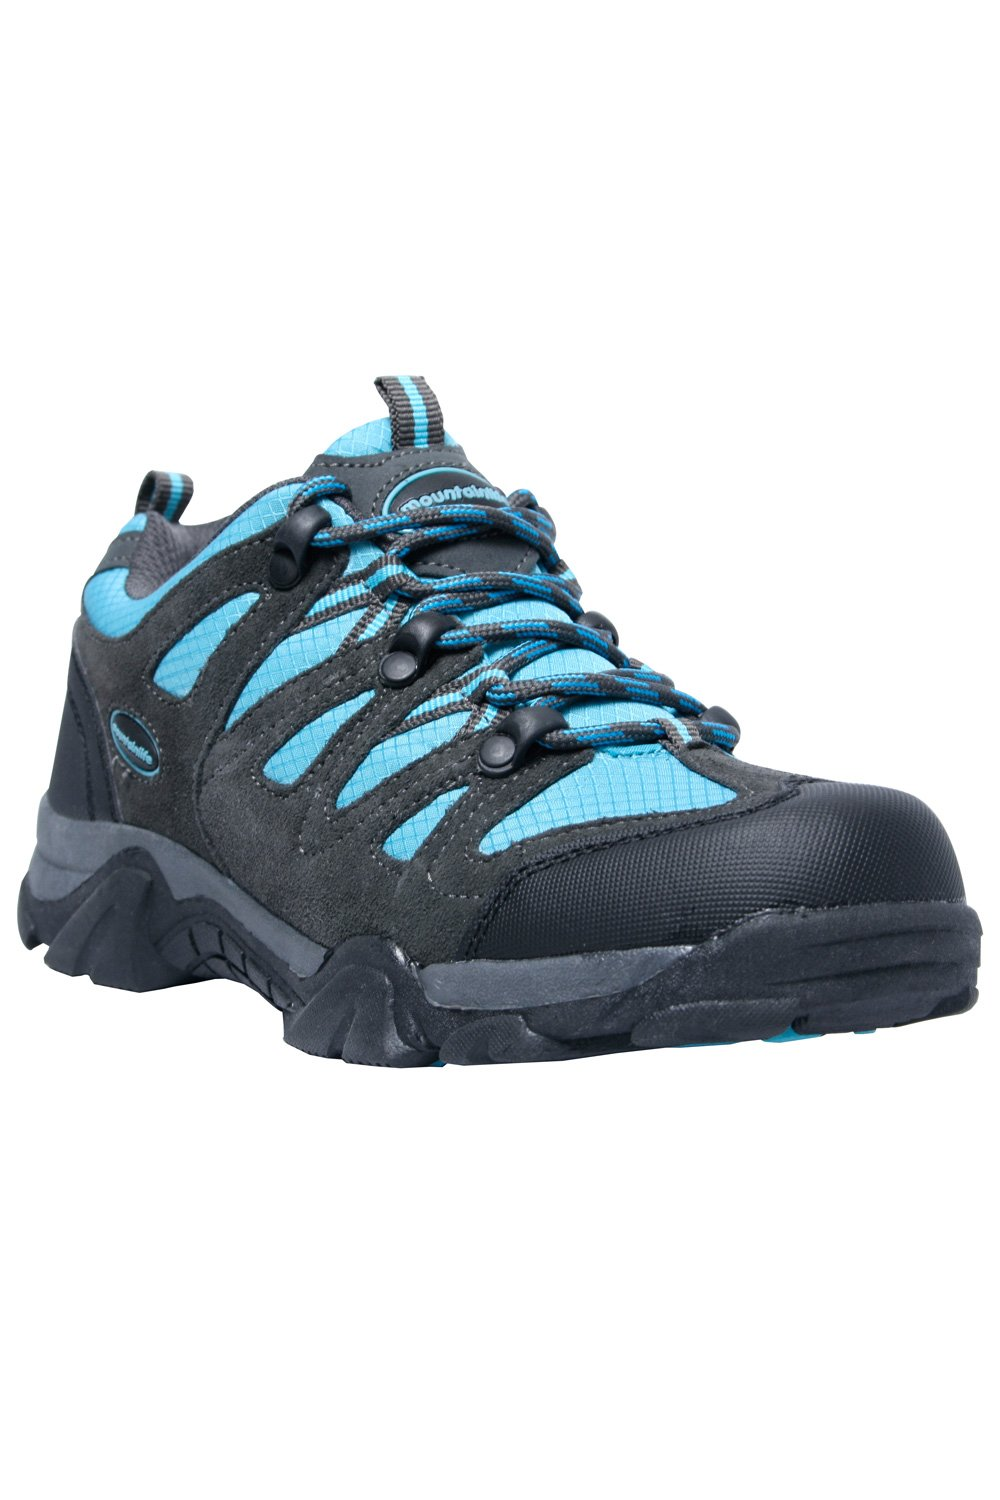 Mountain Warehouse Cannonball Kids Walking Shoes - Hiking Shoes Blue 1 Child US